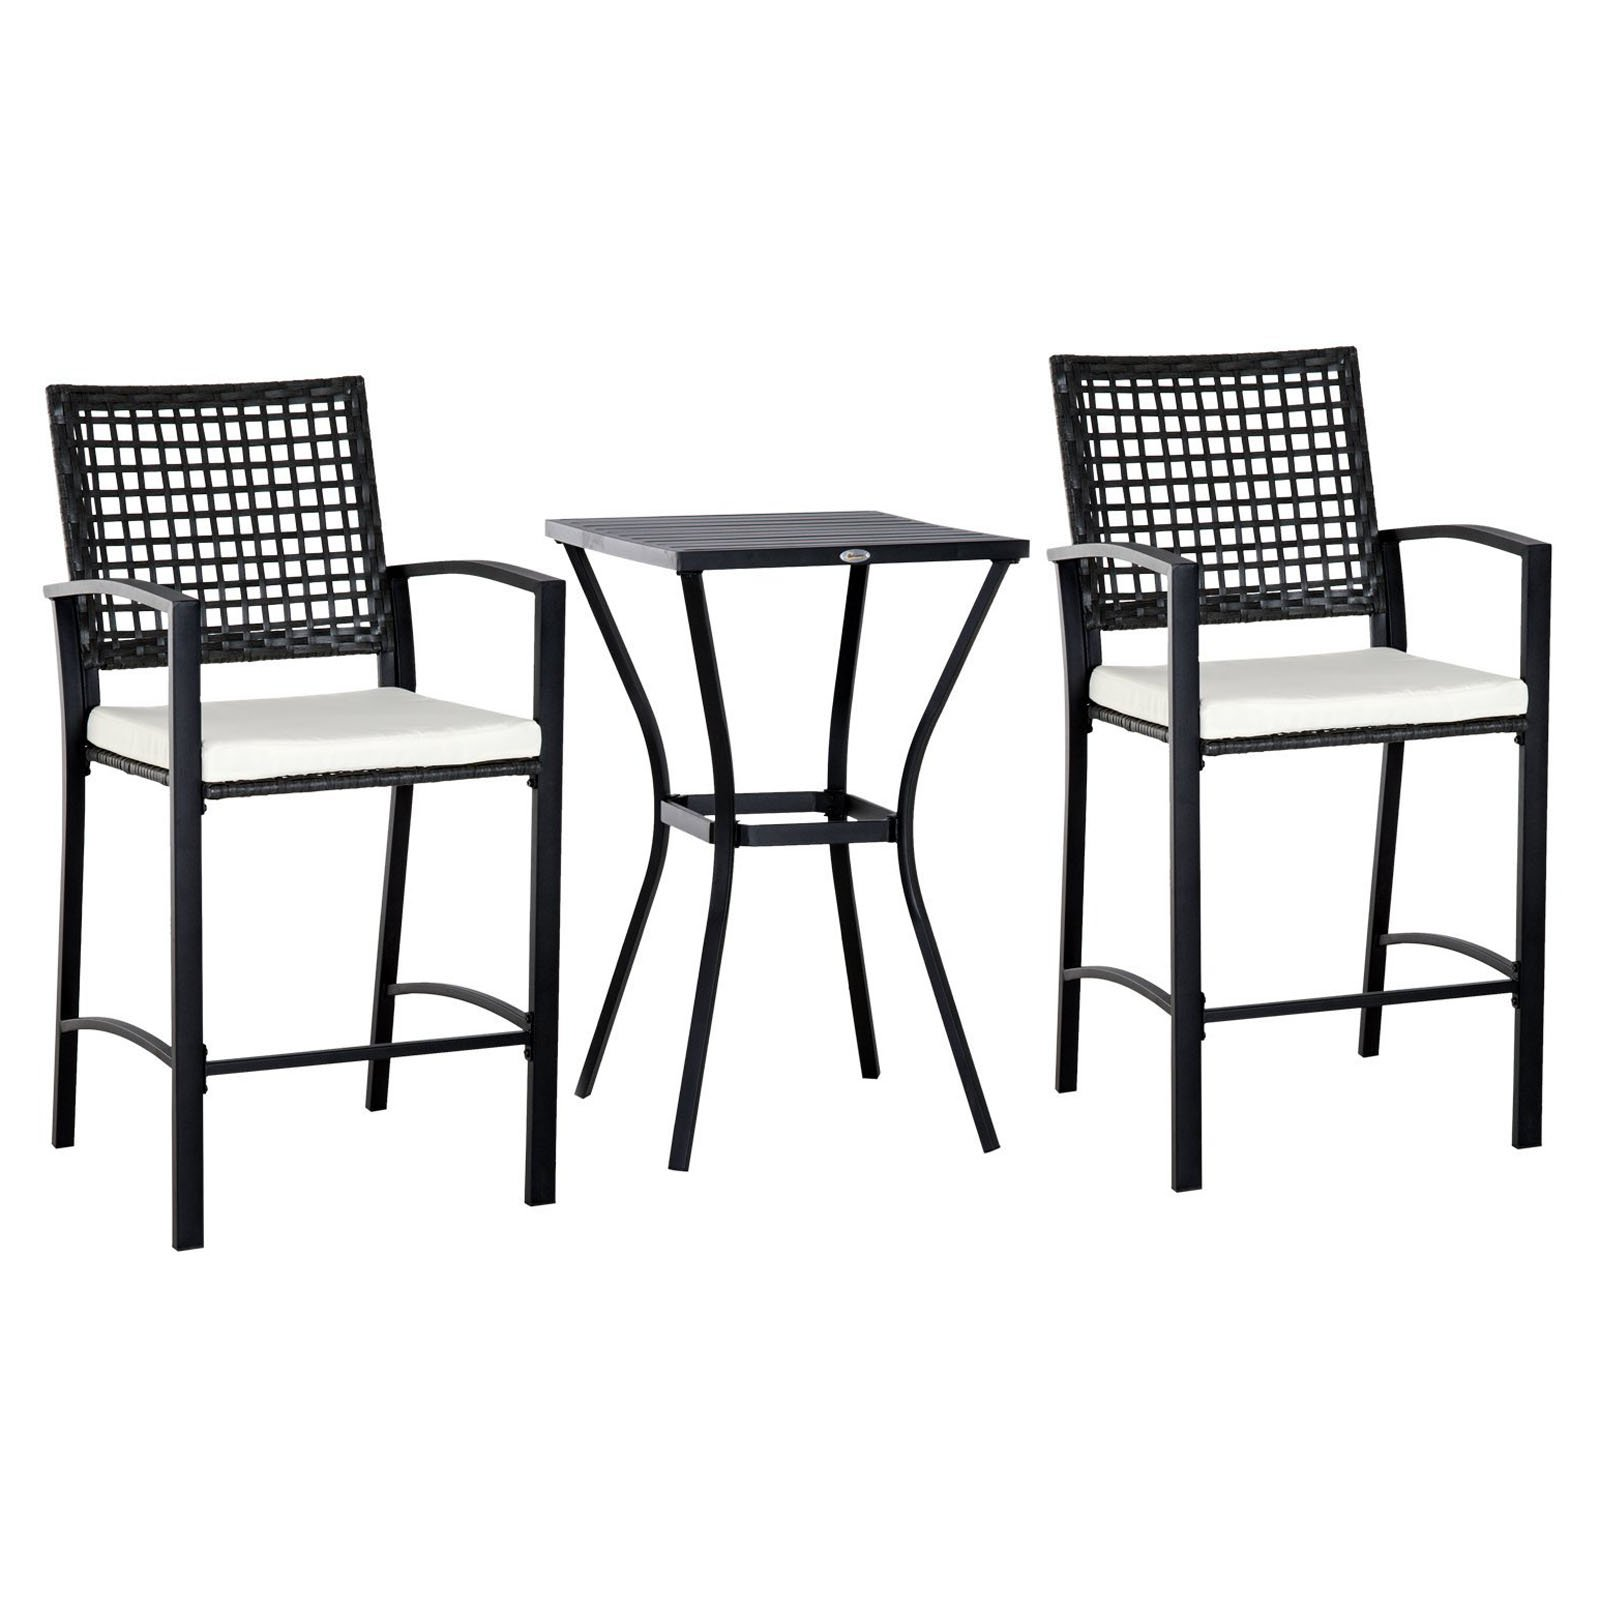 Outsunny Wicker 3 Piece Patio Bar Height Bistro Set